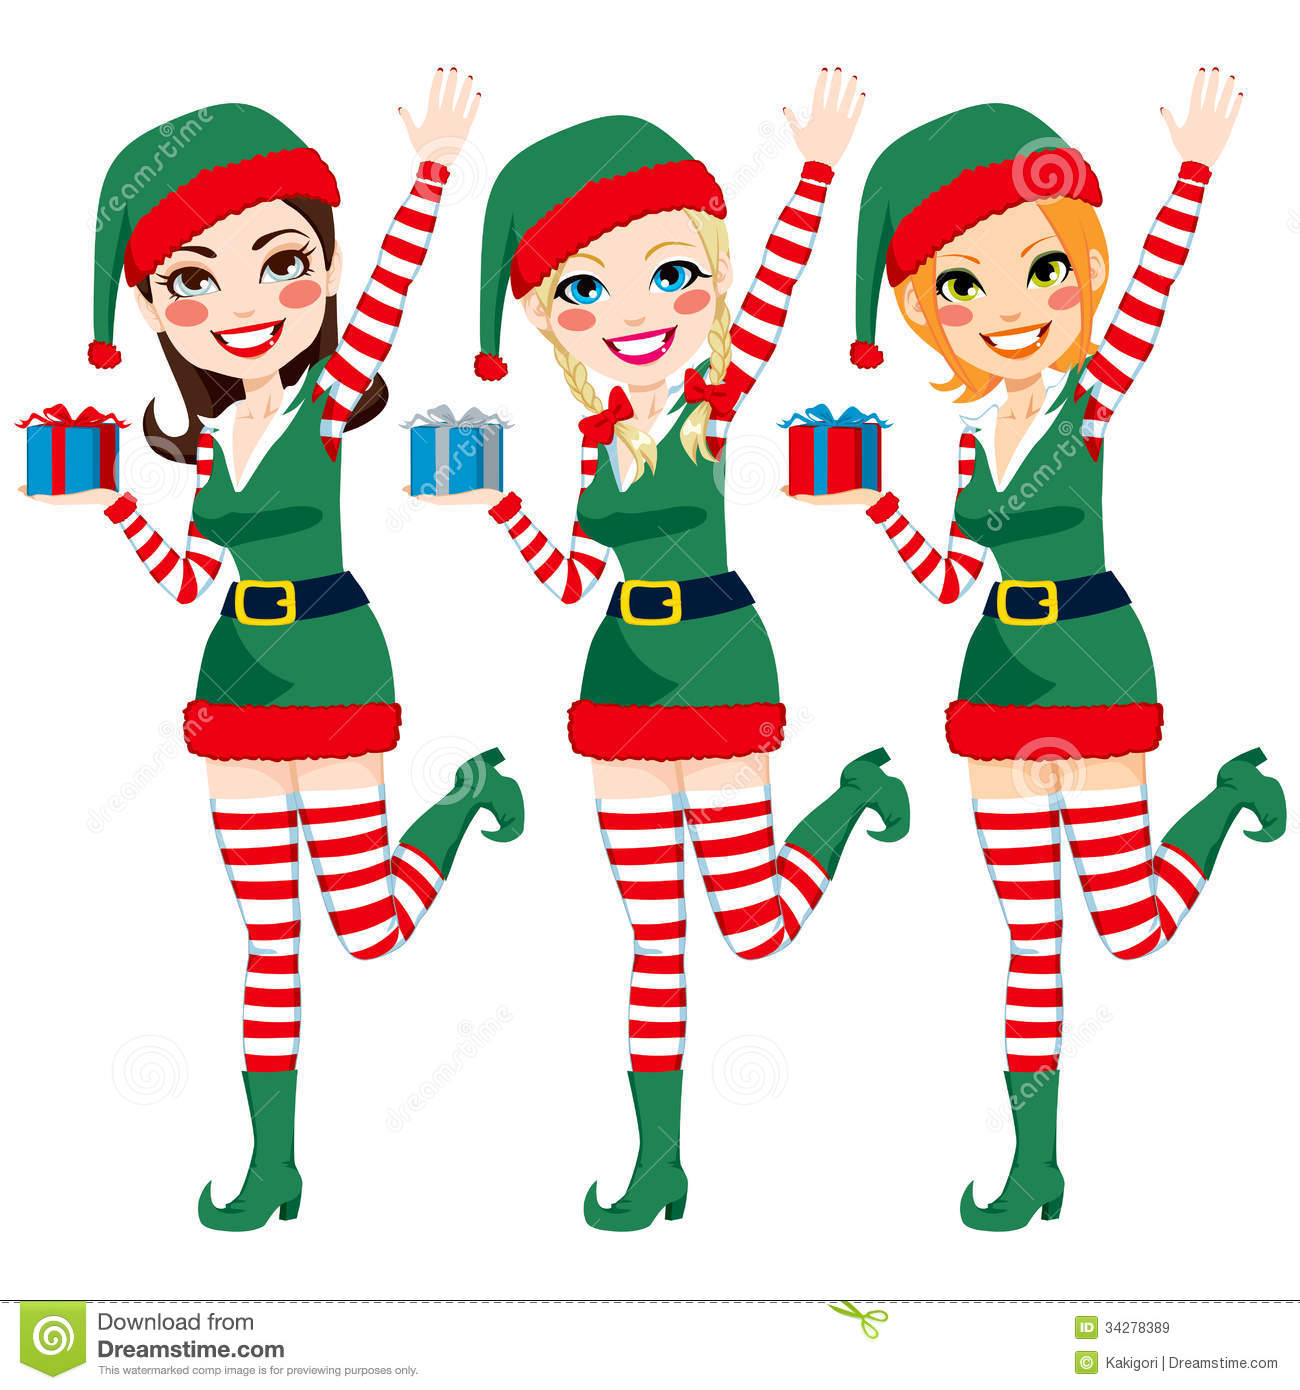 Elves clipart body. Elf images gallery for